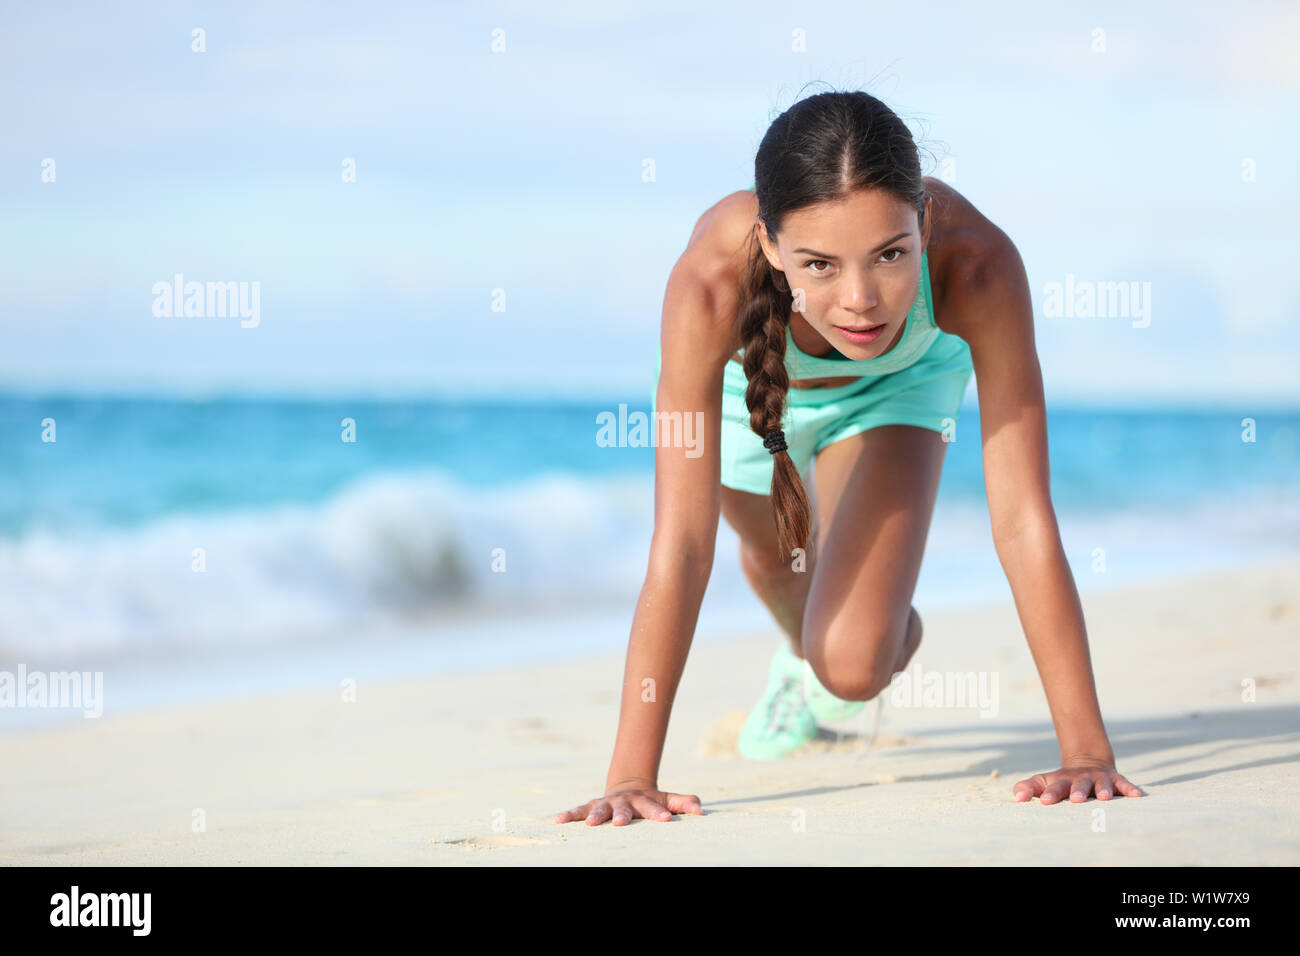 Fitness athlete working out body core with bodyweight exercises. Strong fit woman training cardio and exercising abdominal muscles with mountain climber workout exercise on beach. - Stock Image